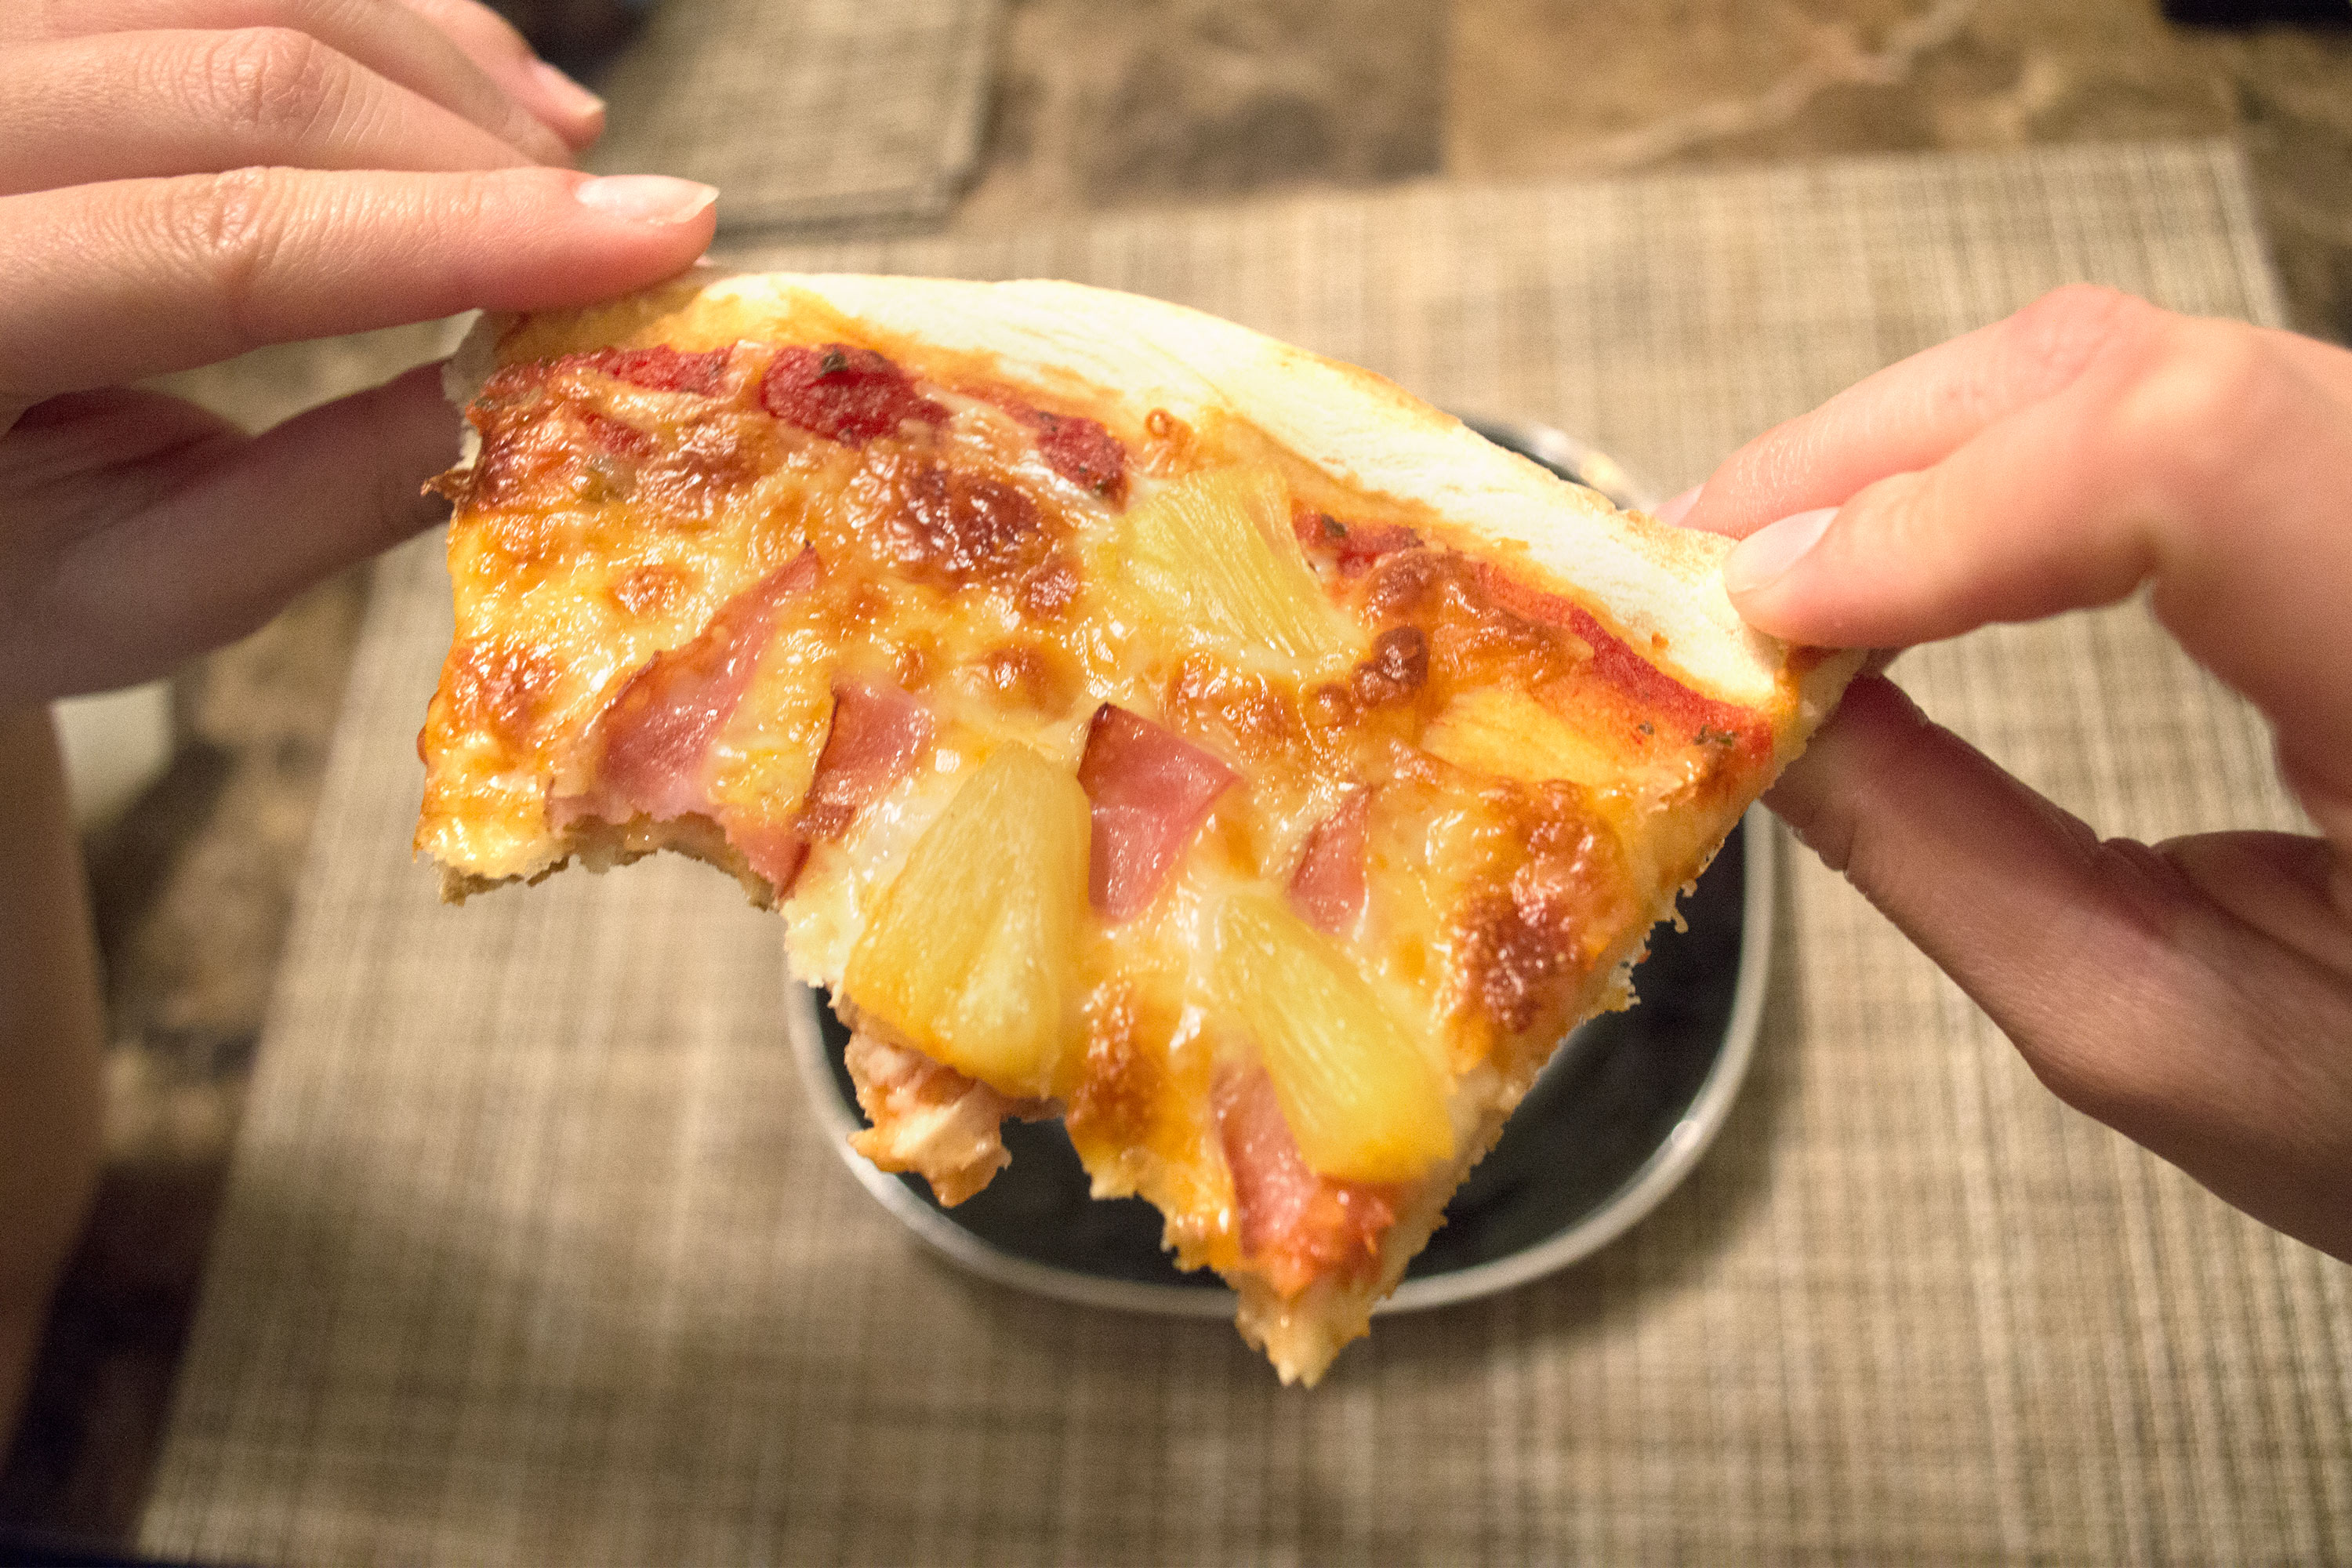 How To Make A Frozen Pizza How To Cook Whole Foods Pizza Dough Livestrongcom